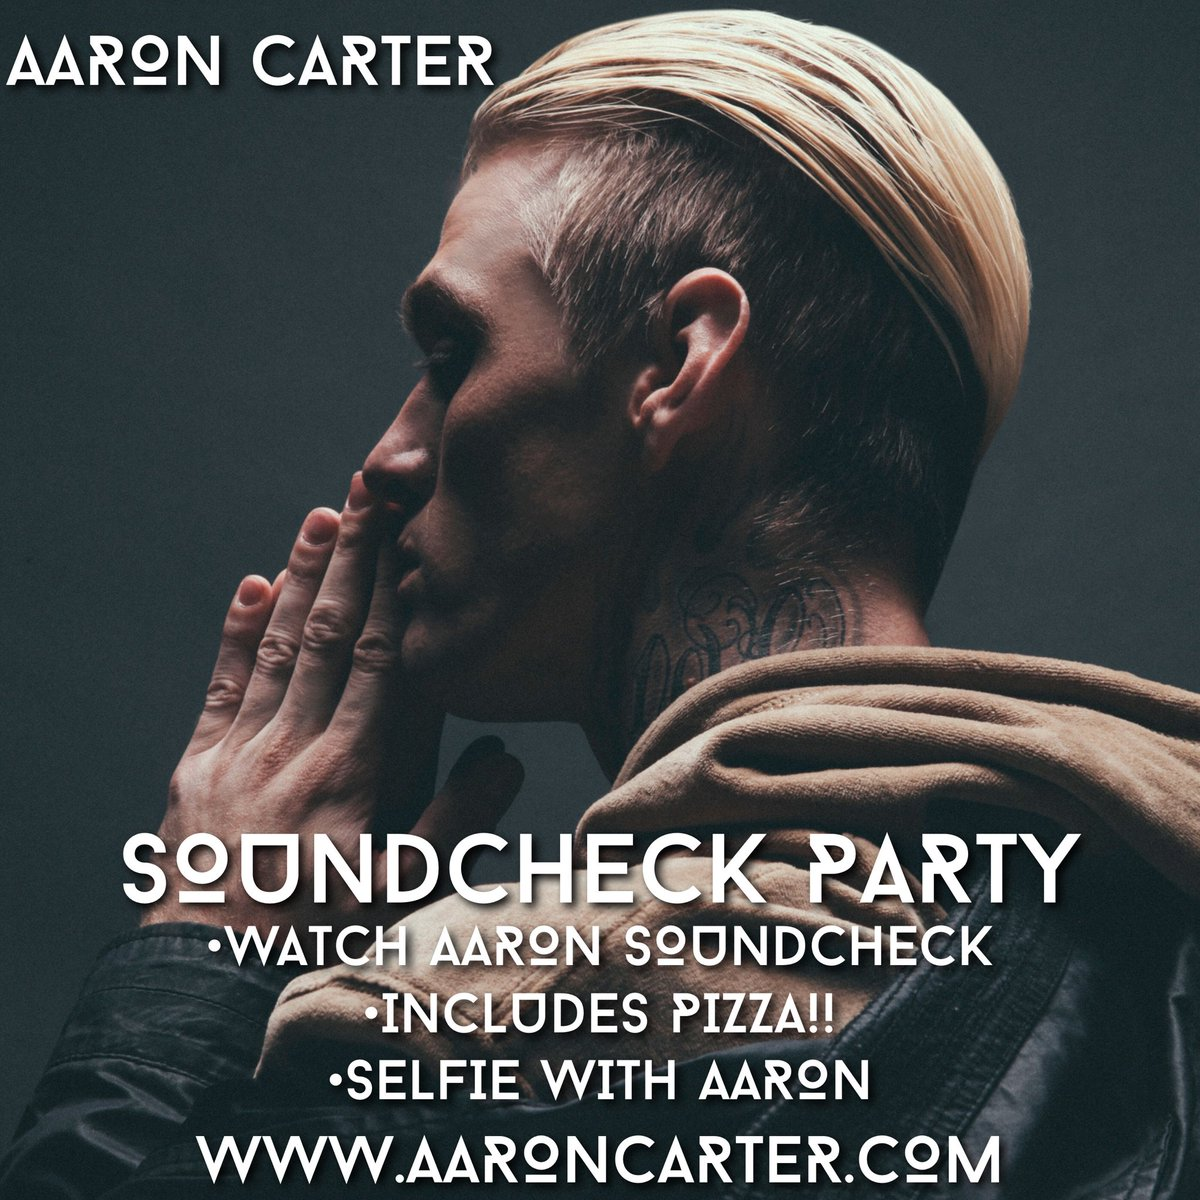 Get your soundcheck tickets directly from my website!! https://t.co/Gr7IftfdM8 can't wait to see you guys on the road. Remember this is a completely separate event from VIP meet and greets and does not include general admission tickets.